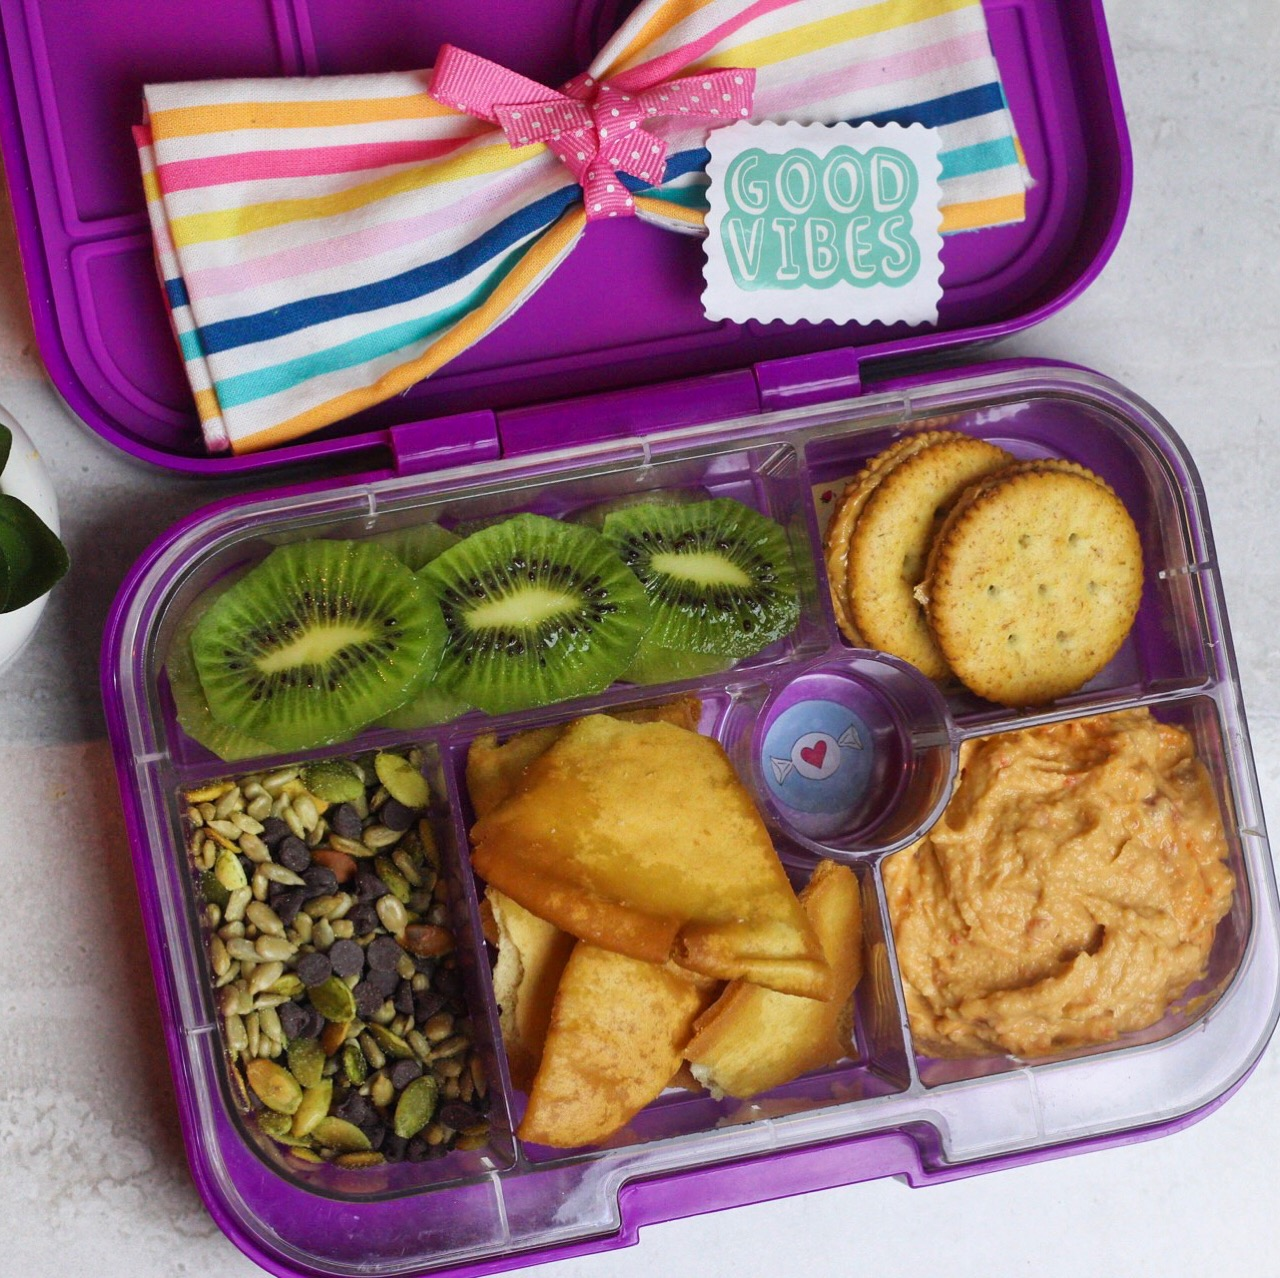 Pick your child's favs & create a trail mix! - Sea salt pita chips, hummus, trail mix (pepitas, sunflower seeds, & chocolate chips), kiwi, and whole wheat peanut butter crackers!